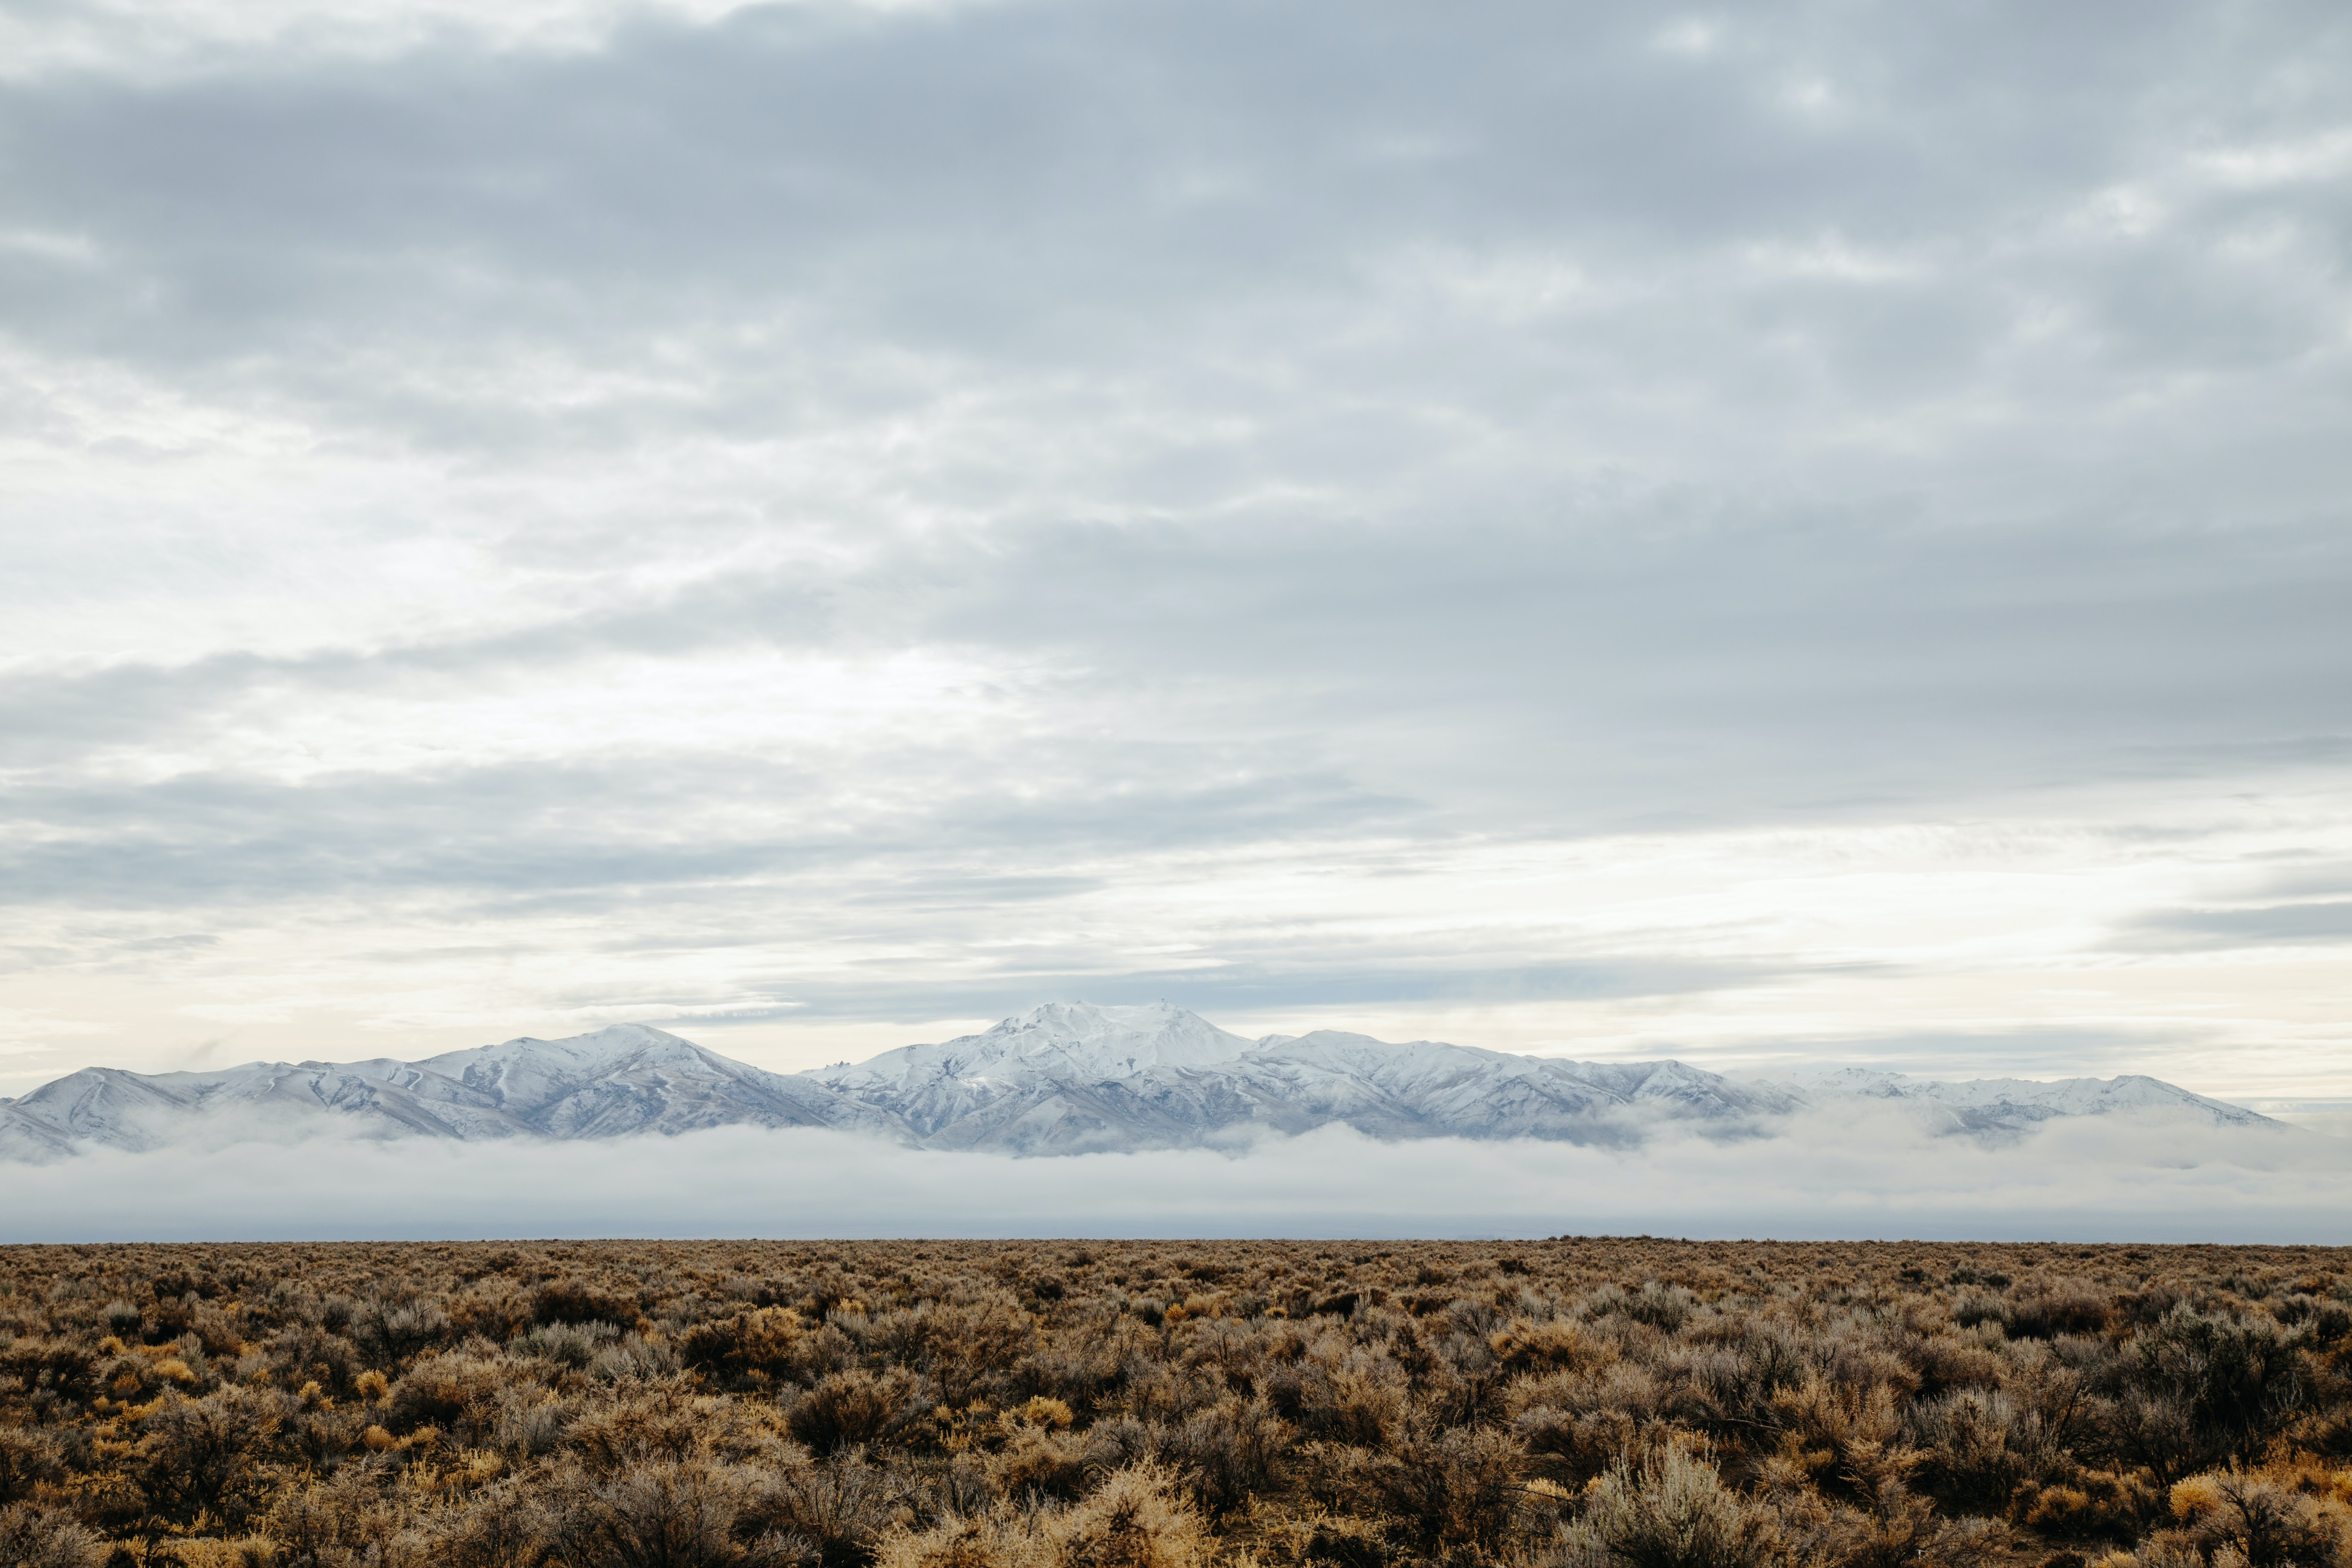 barren field across mountain range photo during cloudy day